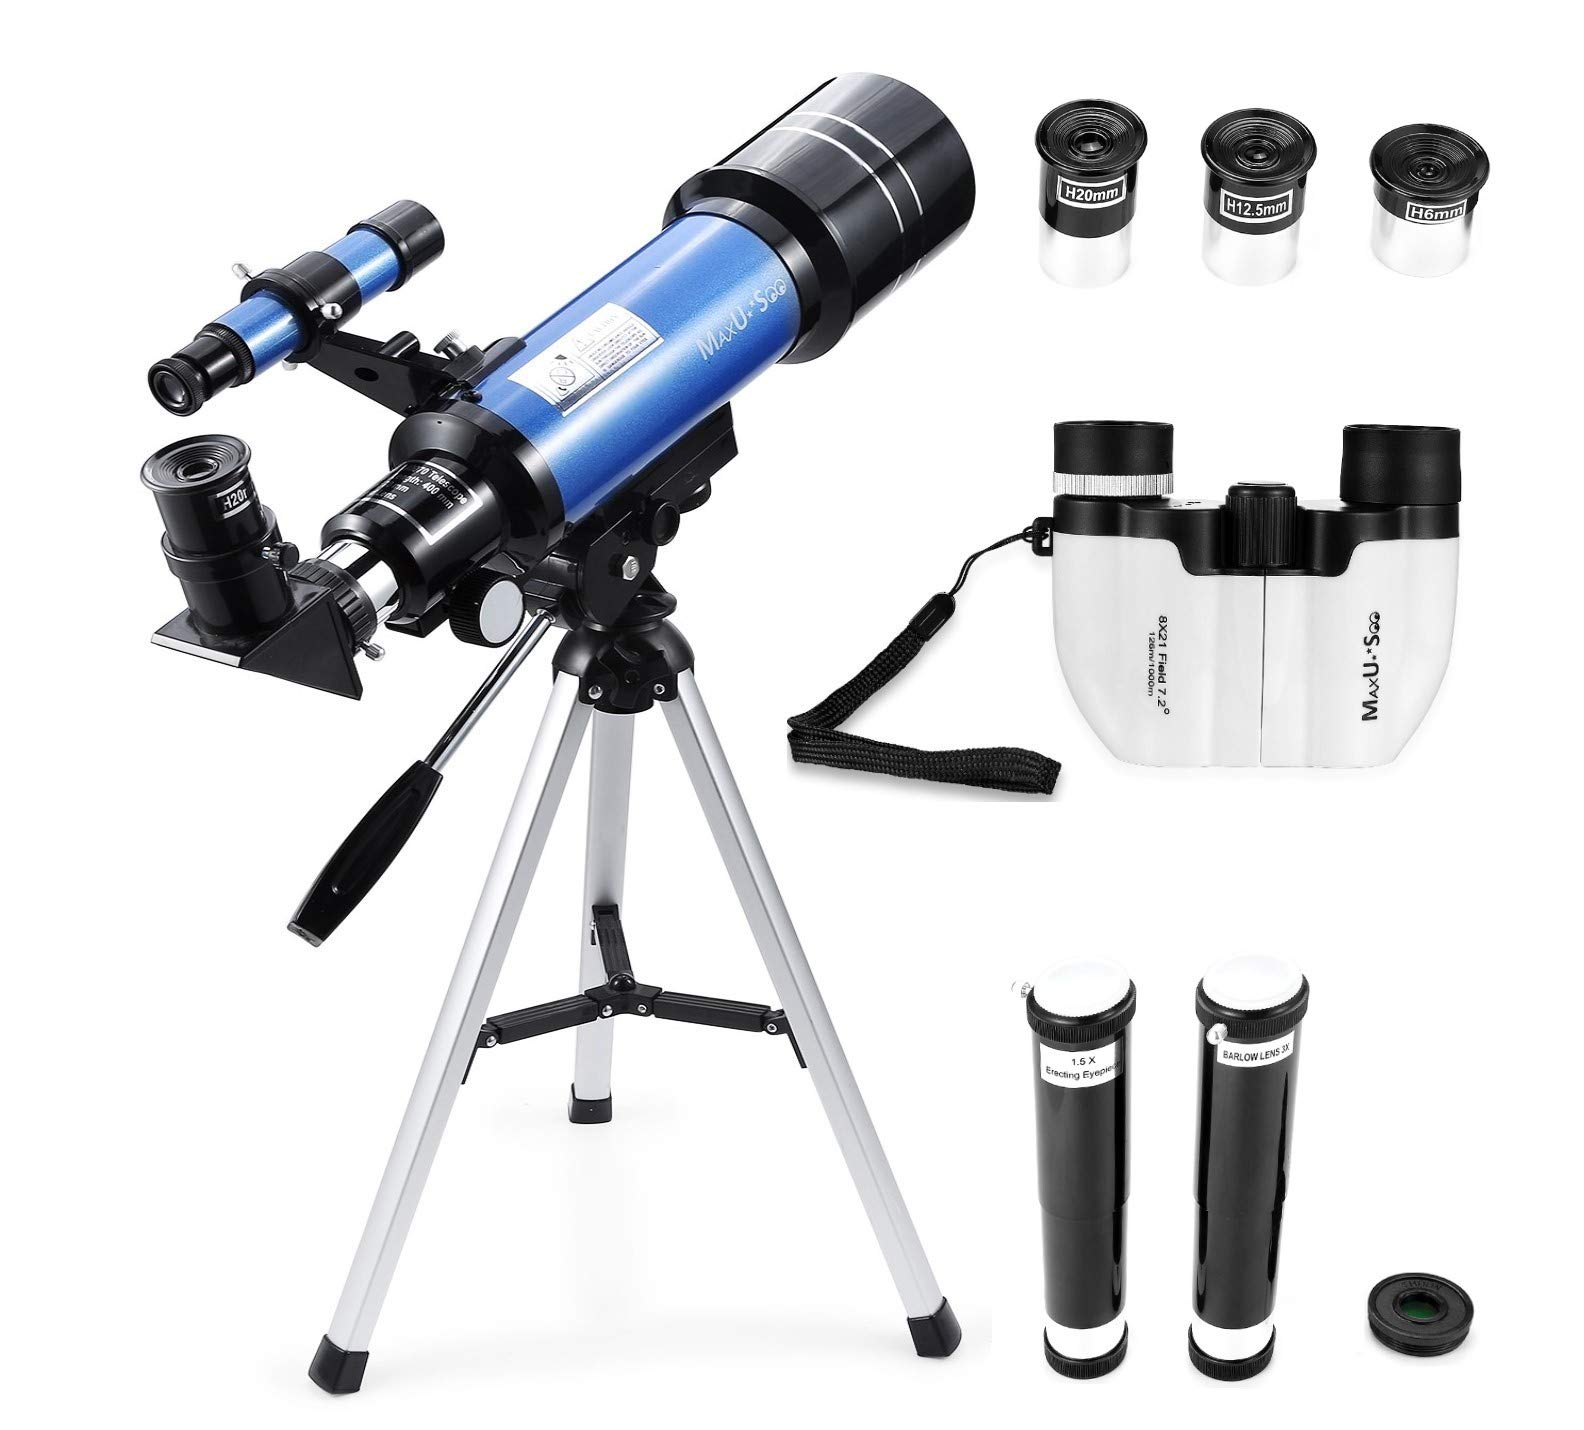 MaxUSee 70mm Refractor Telescope + 8X21 Compact HD Binoculars for Kids and Astronomy Beginners, Travel Scope for Moon Stars Viewing Bird Watching Sightseeing by MaxUSee